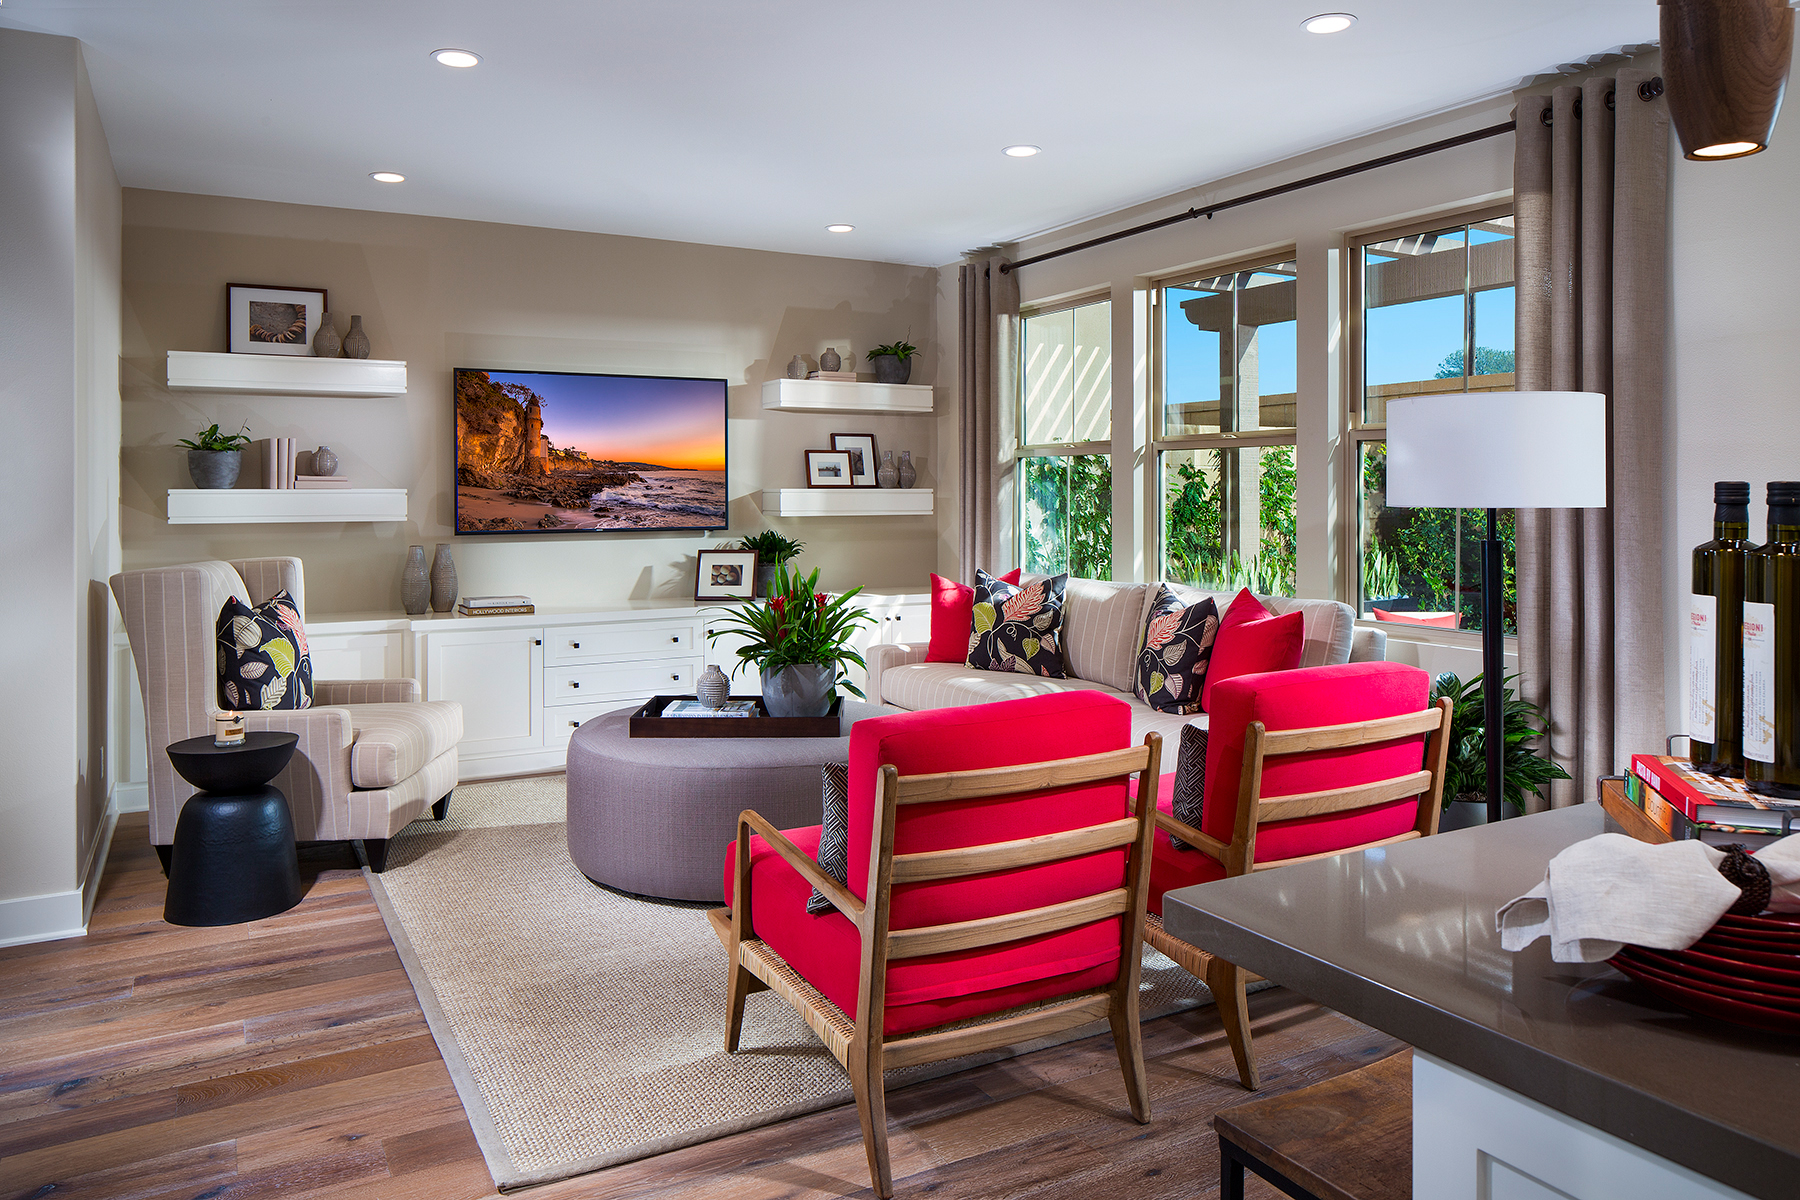 Plan 1 Family Room